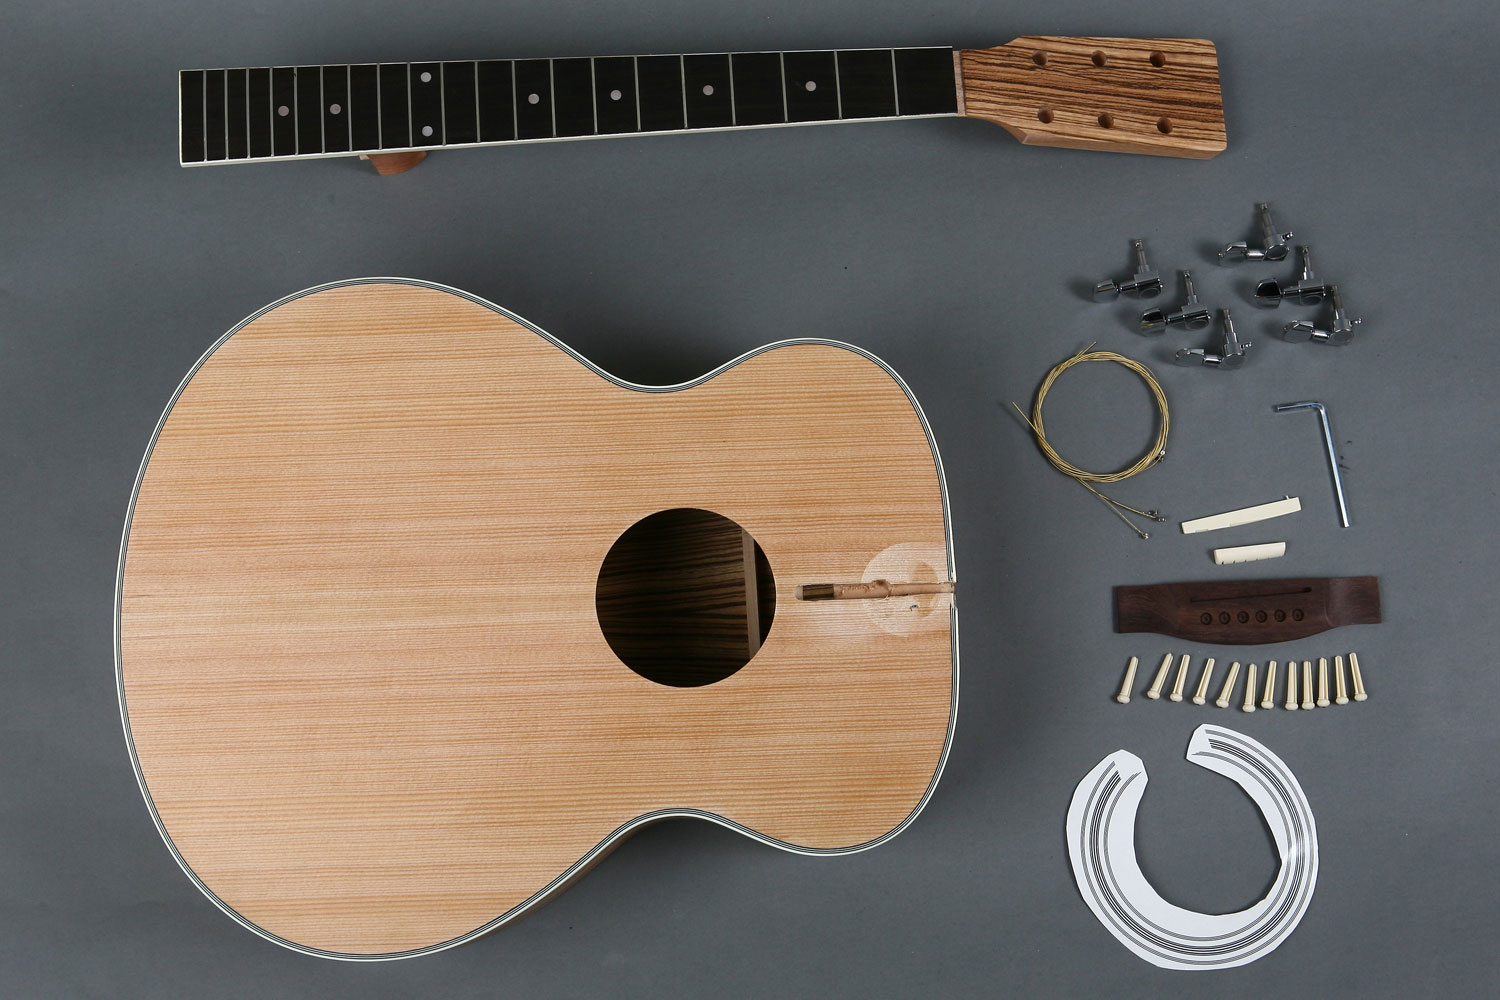 Spruce top jumbo acoustic guitar diy kit gk s4022 byguitar acoustic guitar diy kit gk s4022 gk s4022 solutioingenieria Image collections